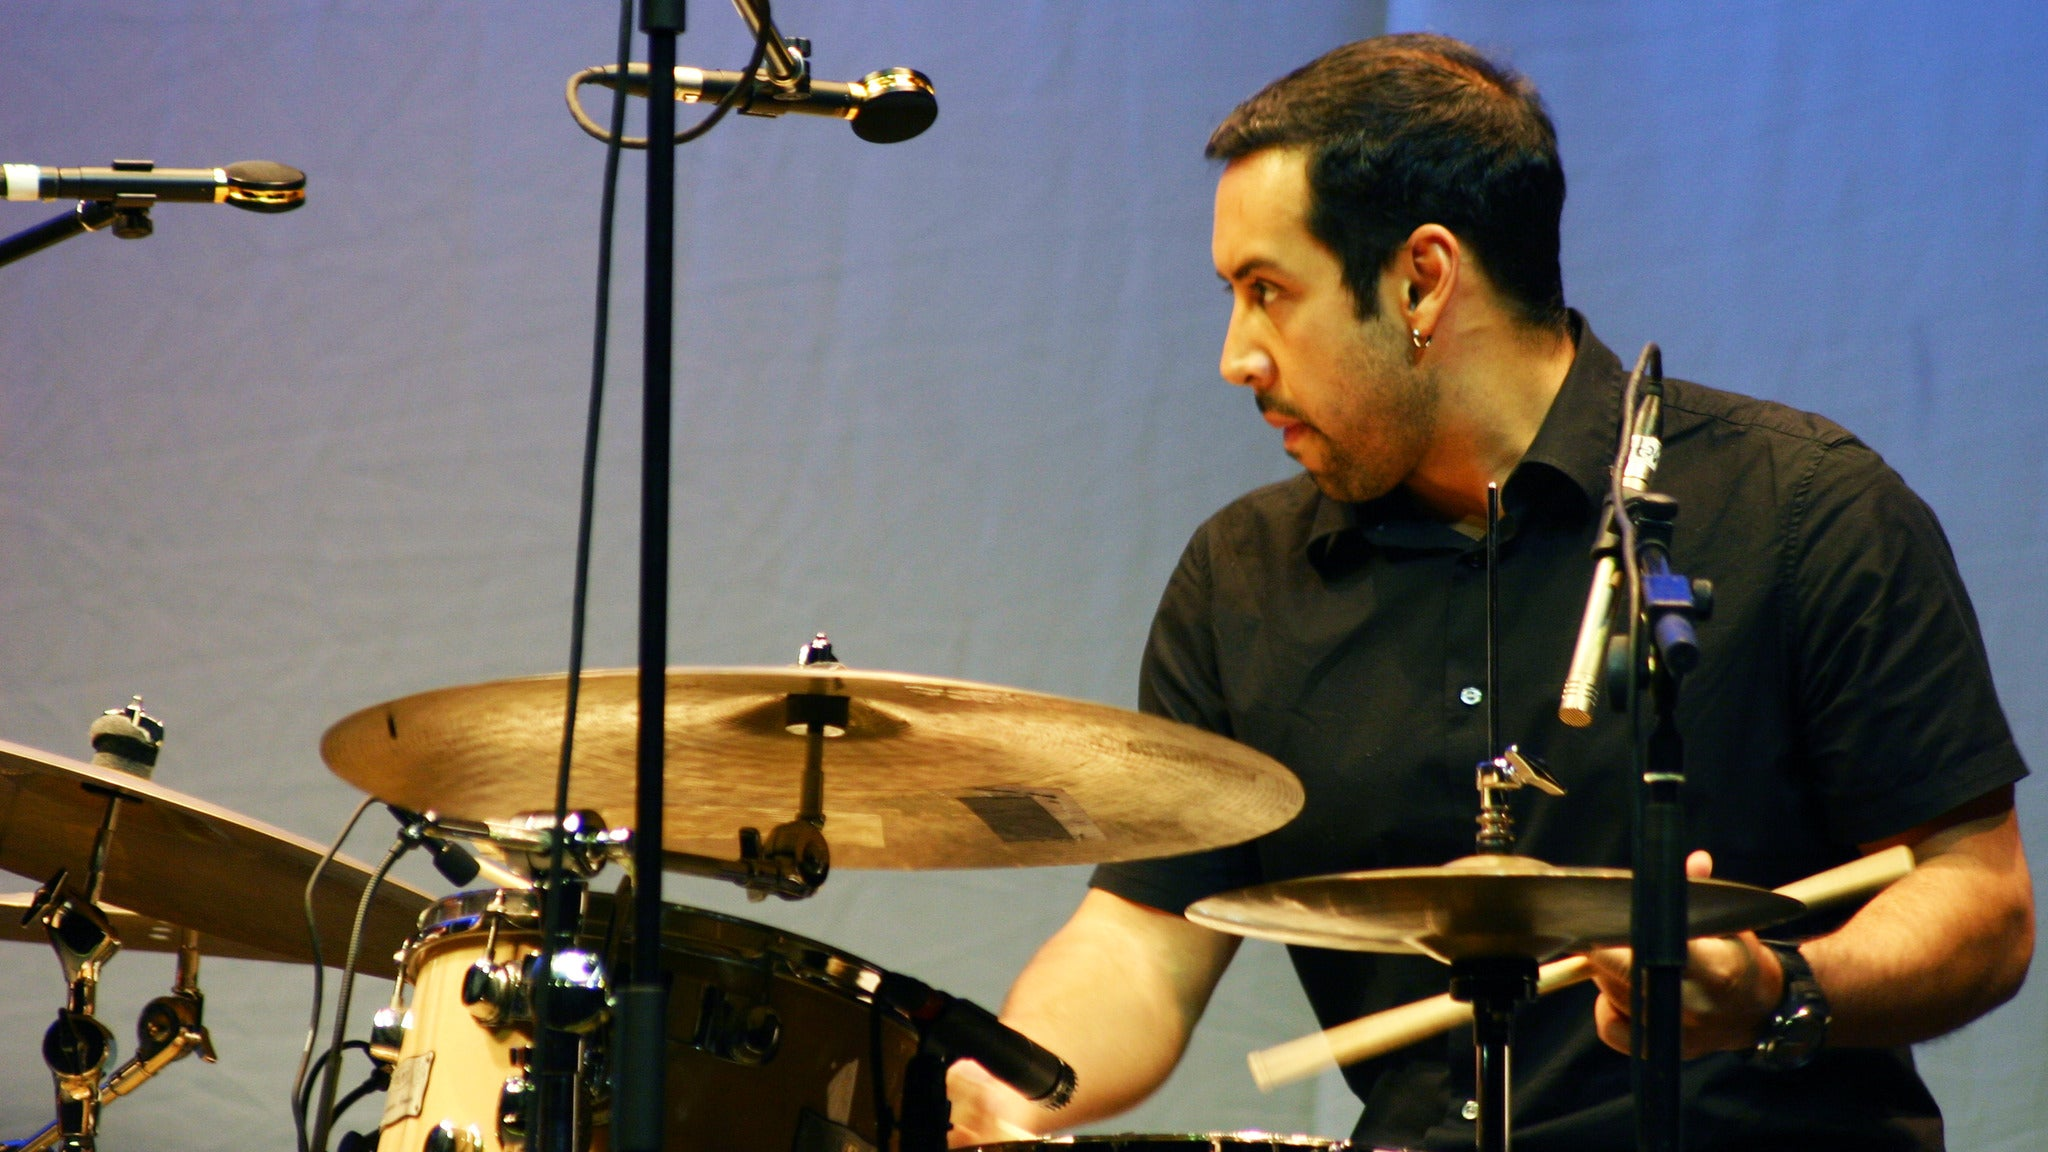 Antonio Sanchez at Ardmore Music Hall - Ardmore, PA 19003